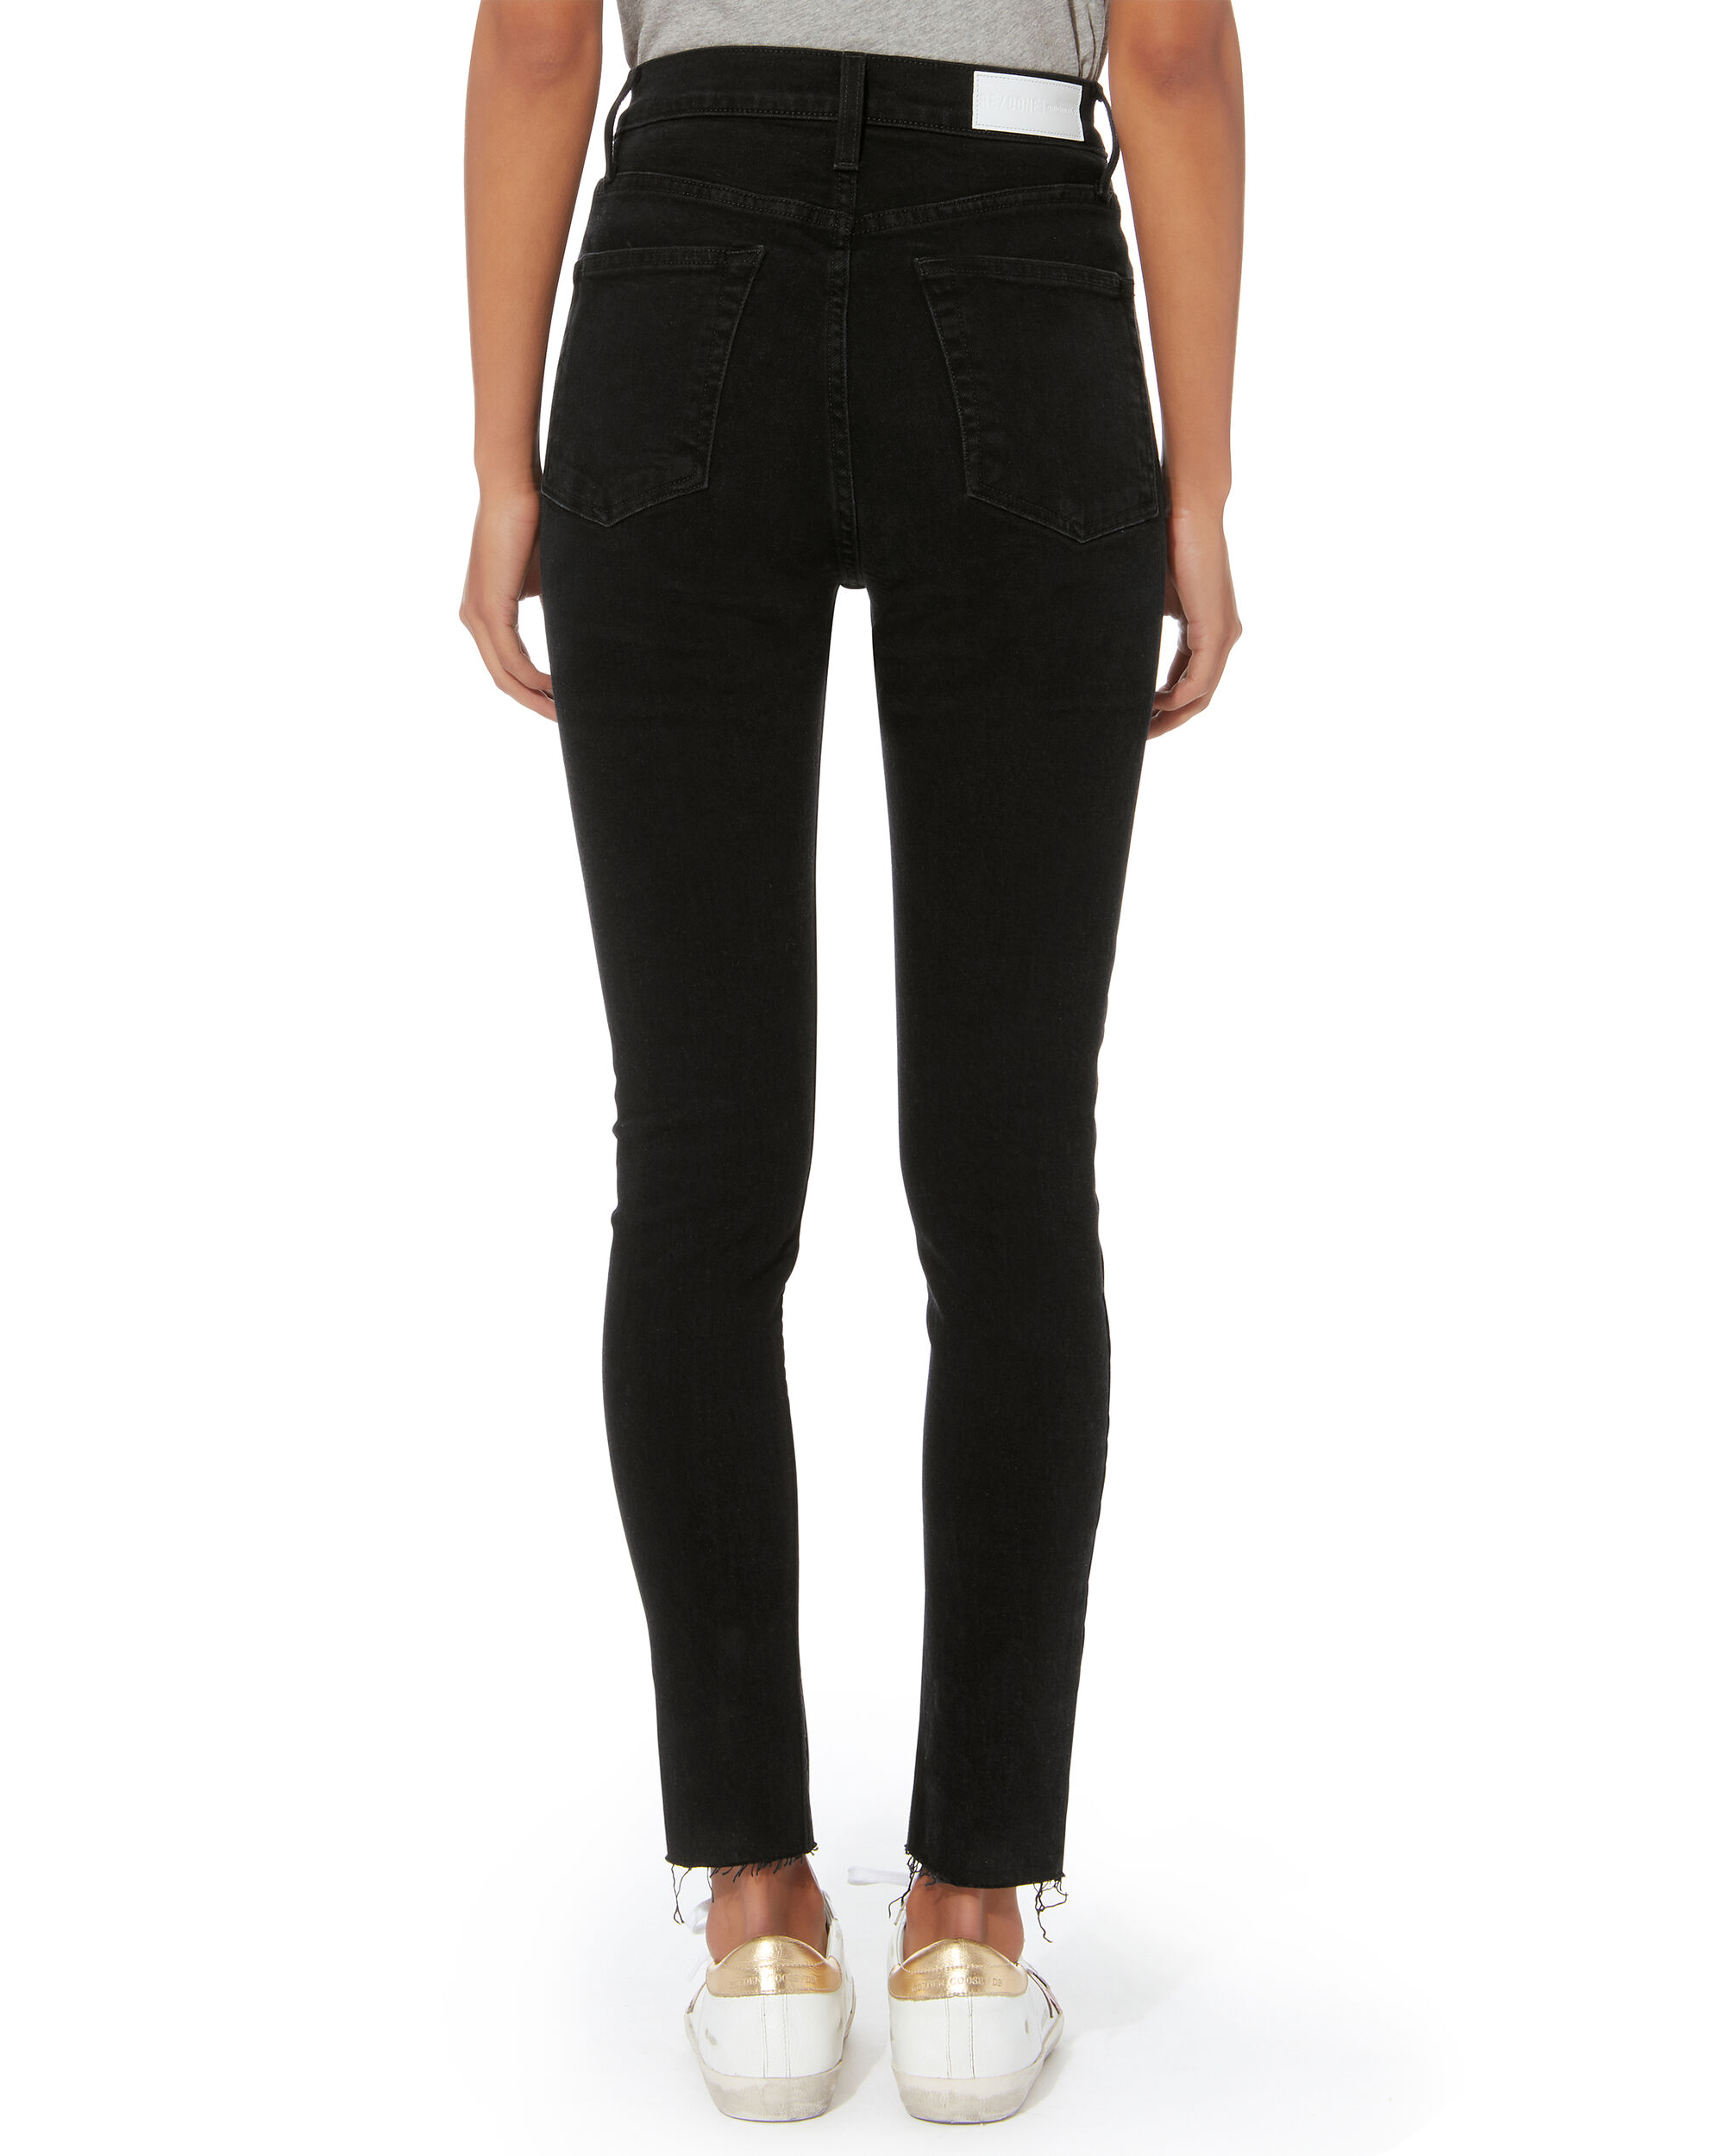 High-Rise Black Destroyed Crop Jeans, BLACK, hi-res